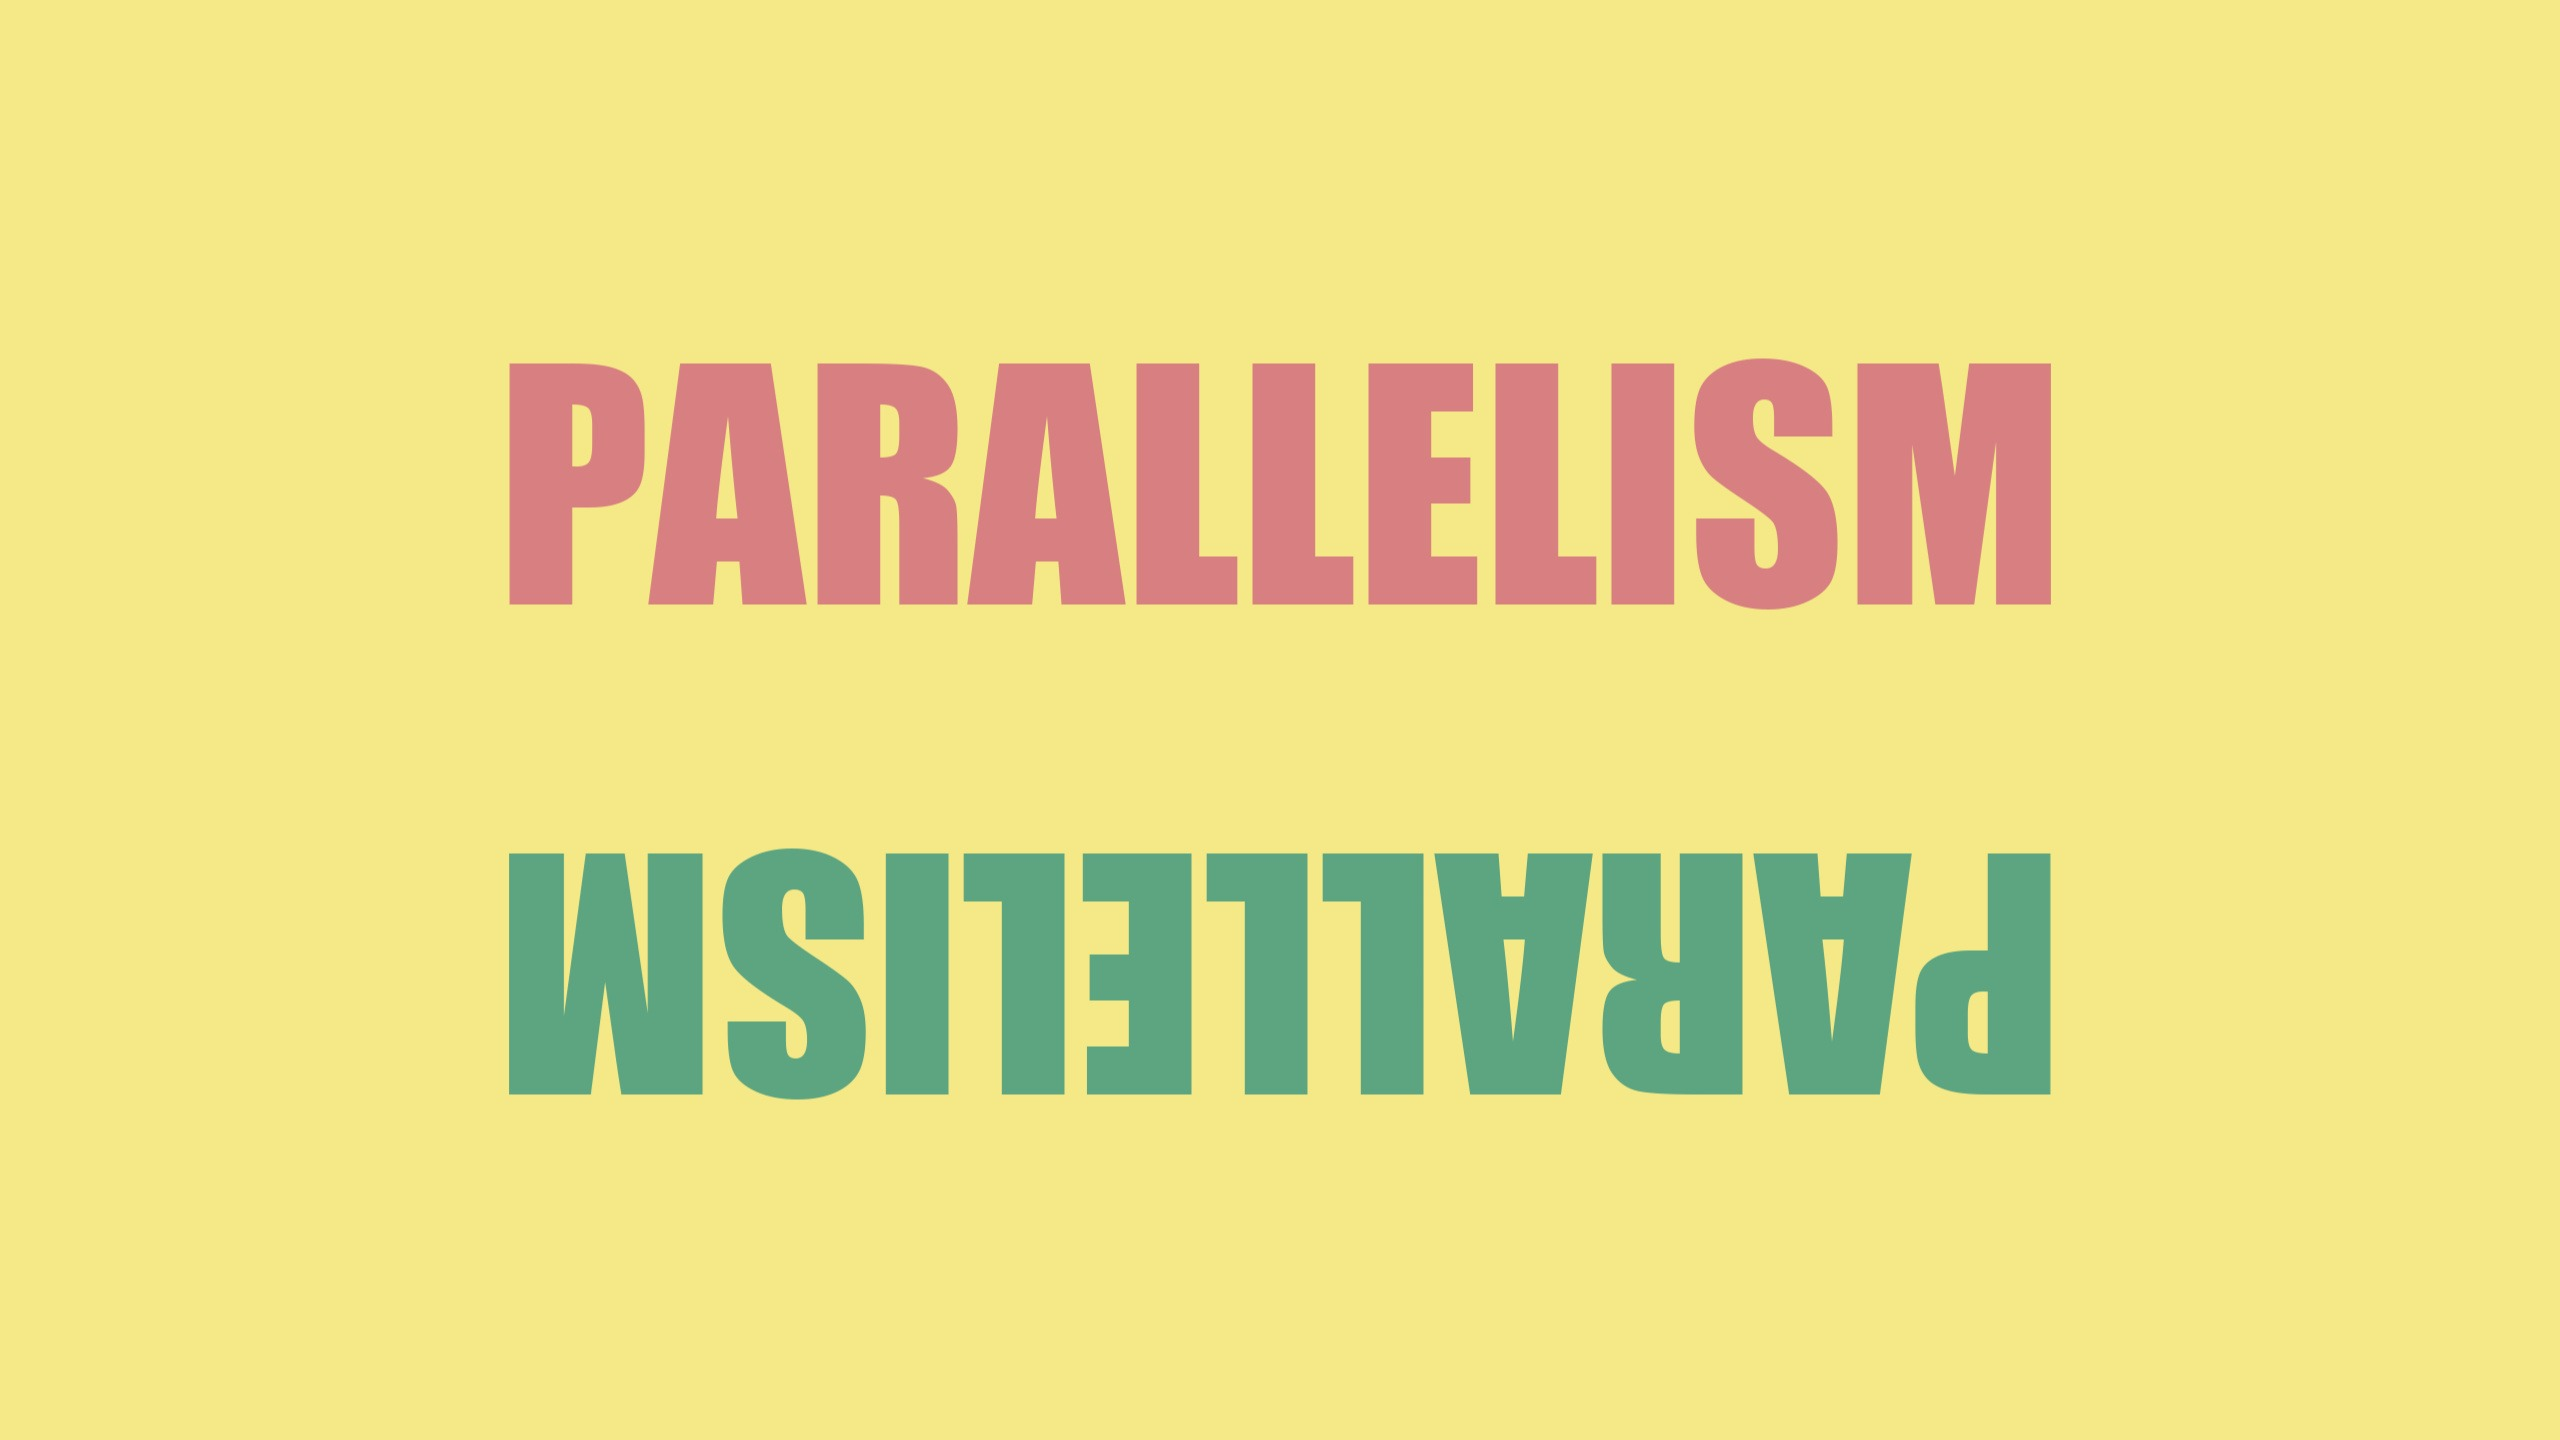 The word parallelism sites on a yellow background and is reflected below to show